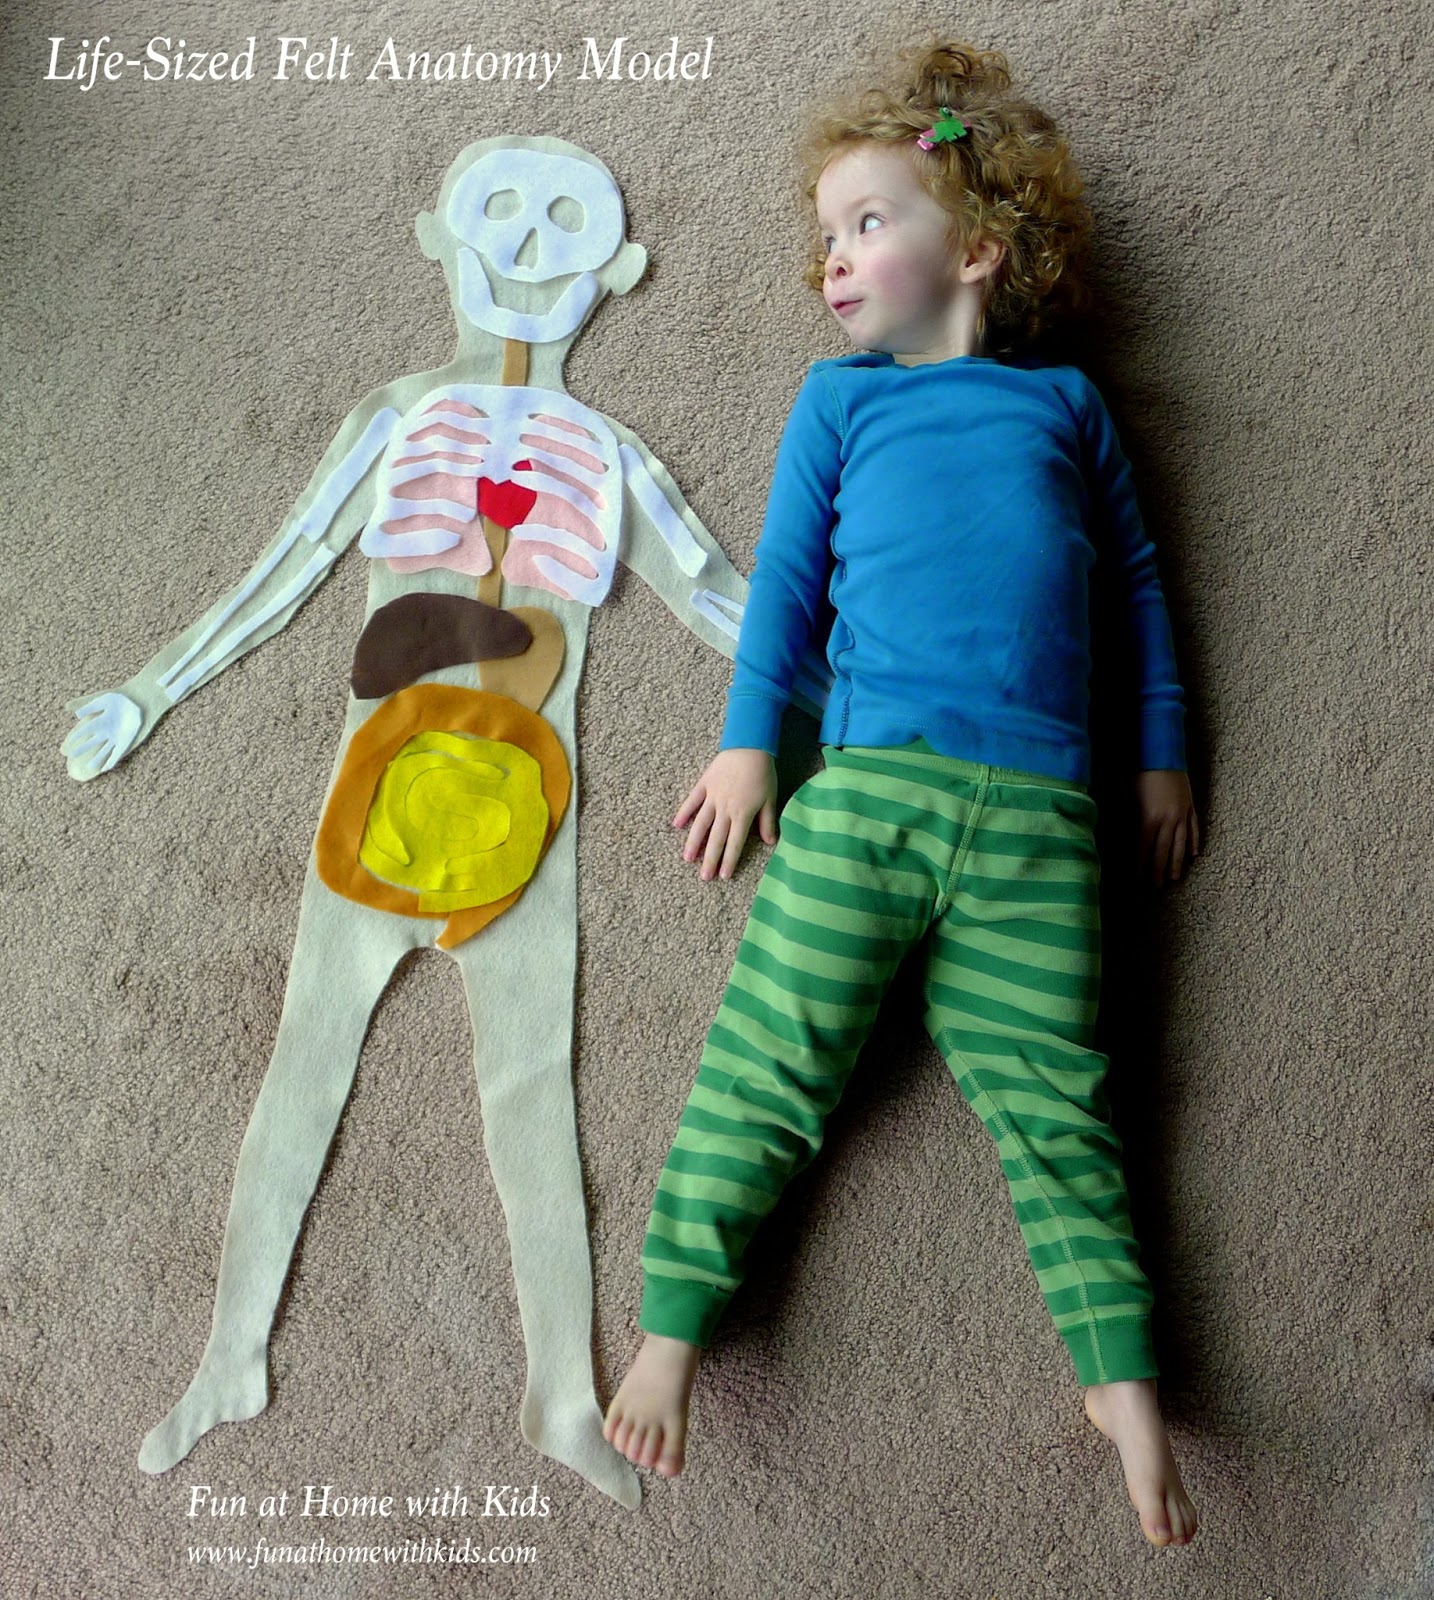 Human anatomy models for kids